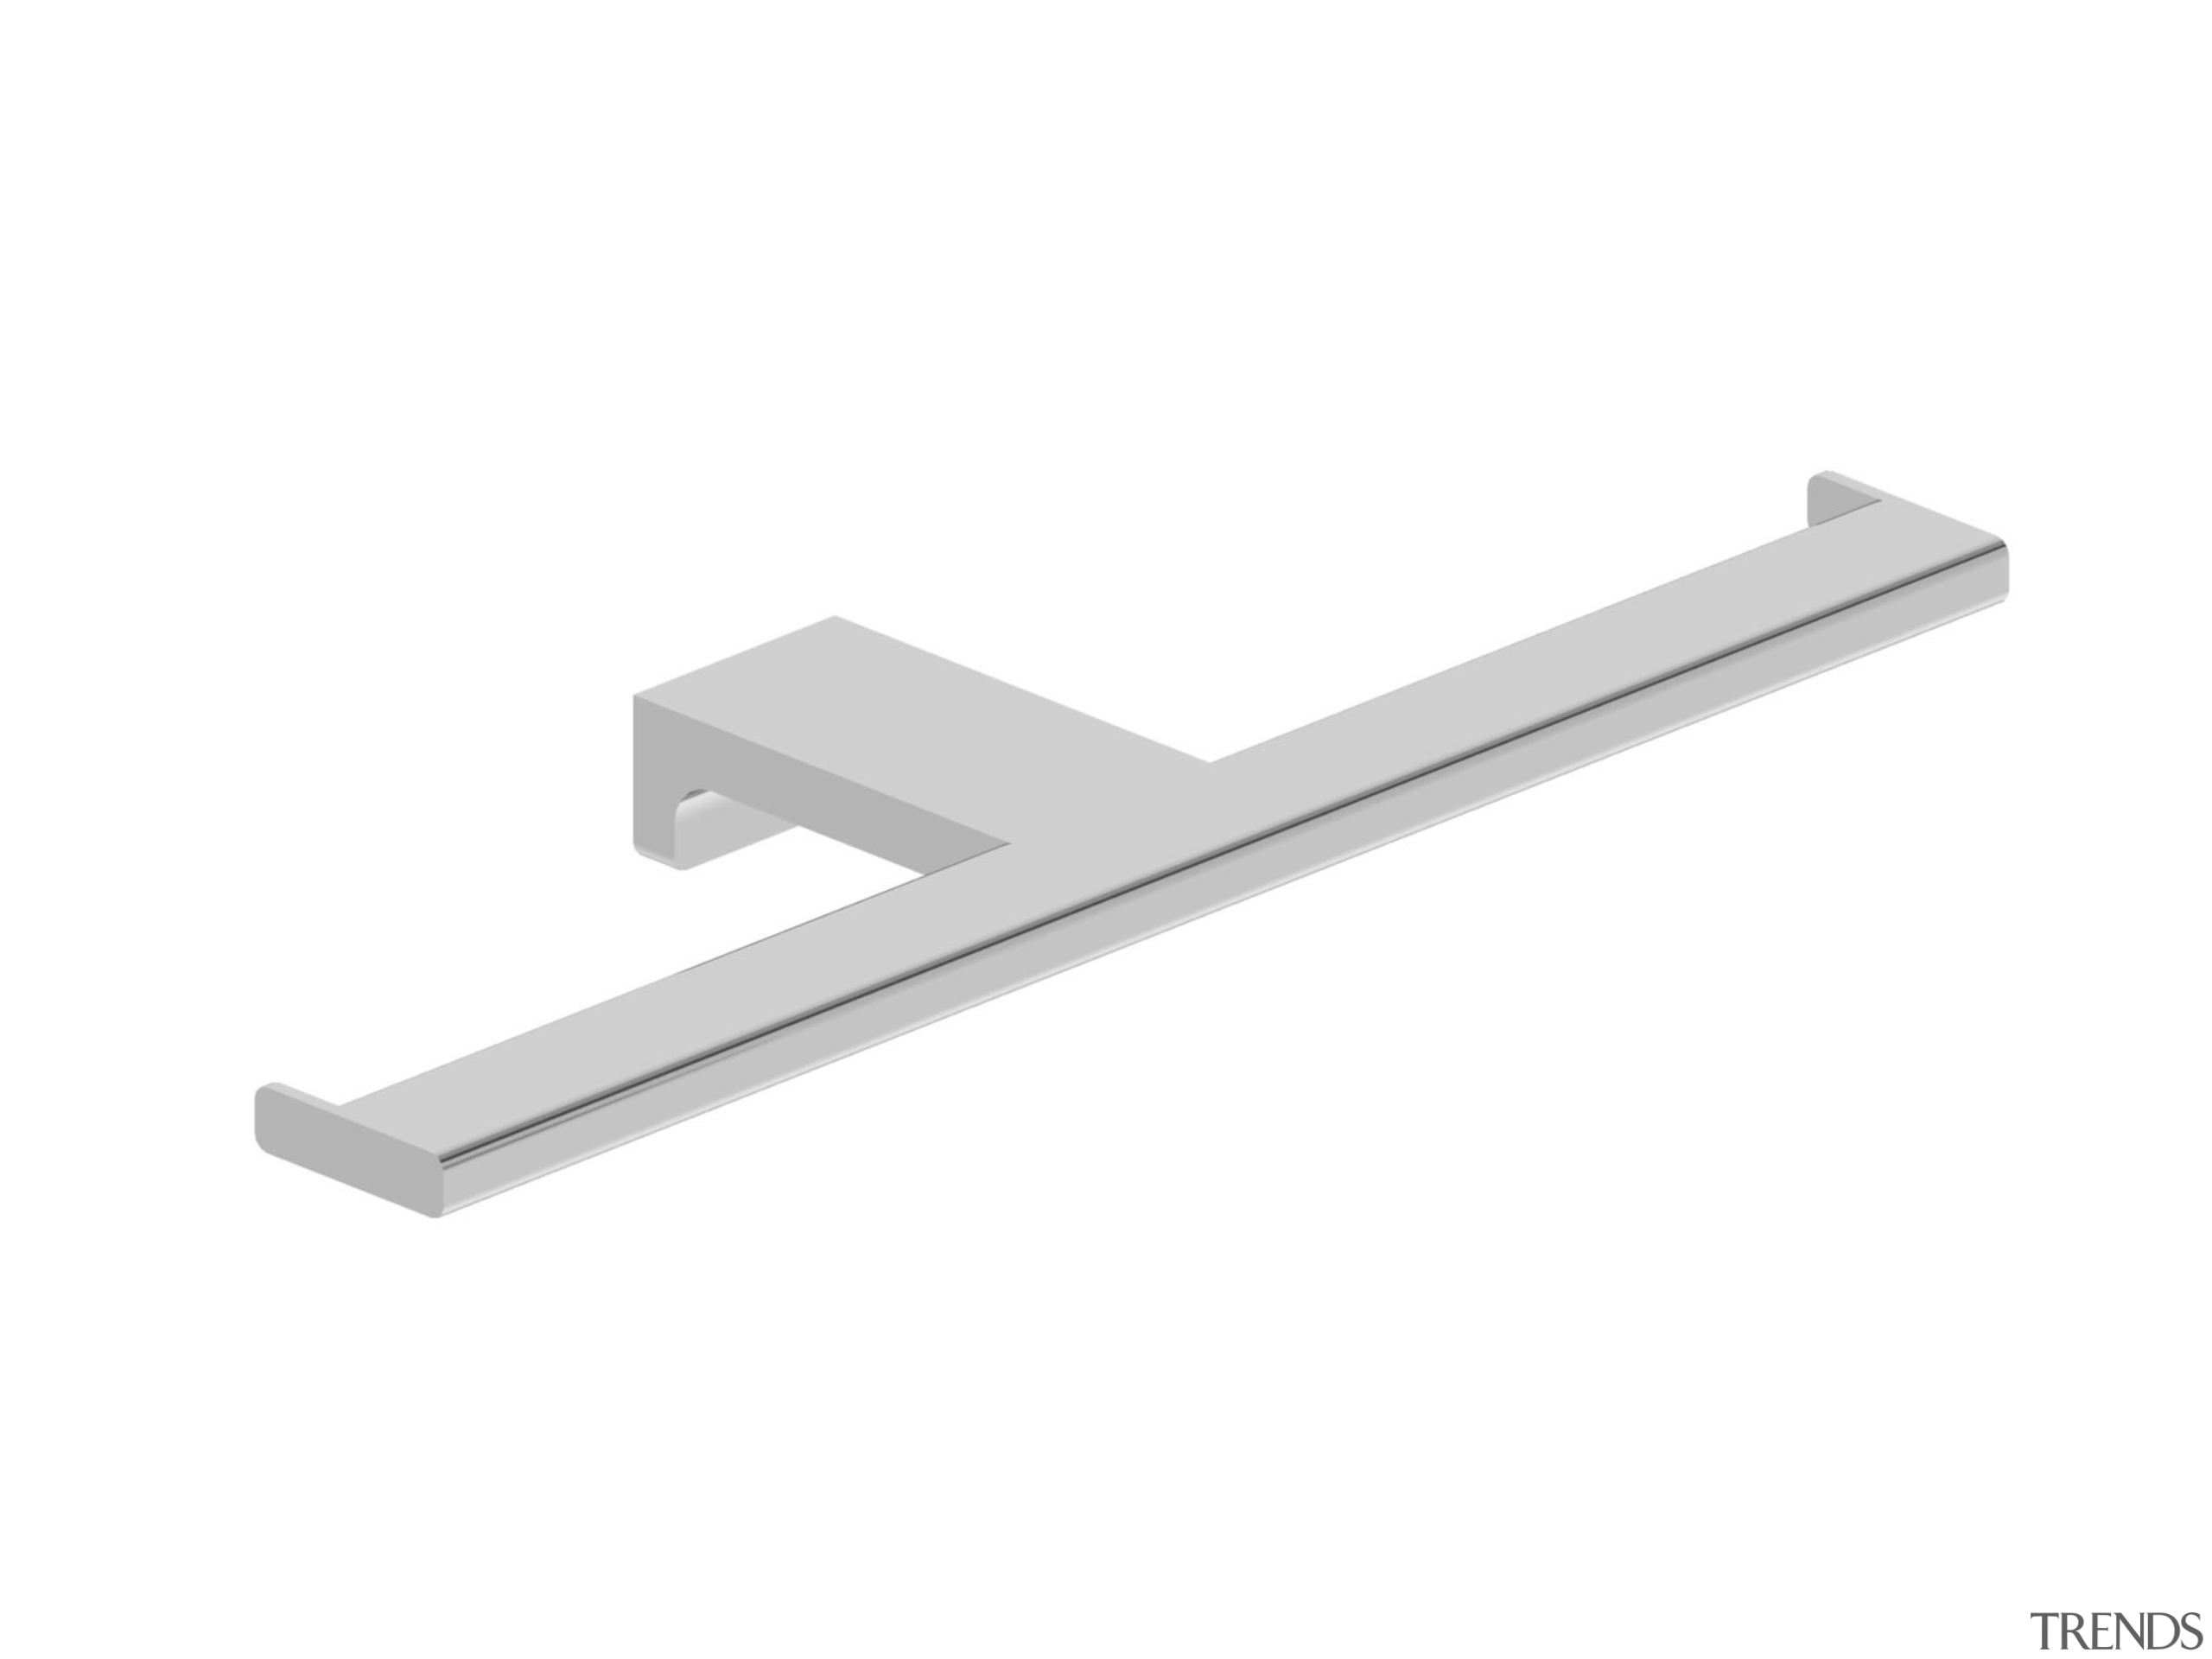 • Manufactured in Australia• Warranty 10 Years• DirectConnect angle, hardware accessory, line, product design, white